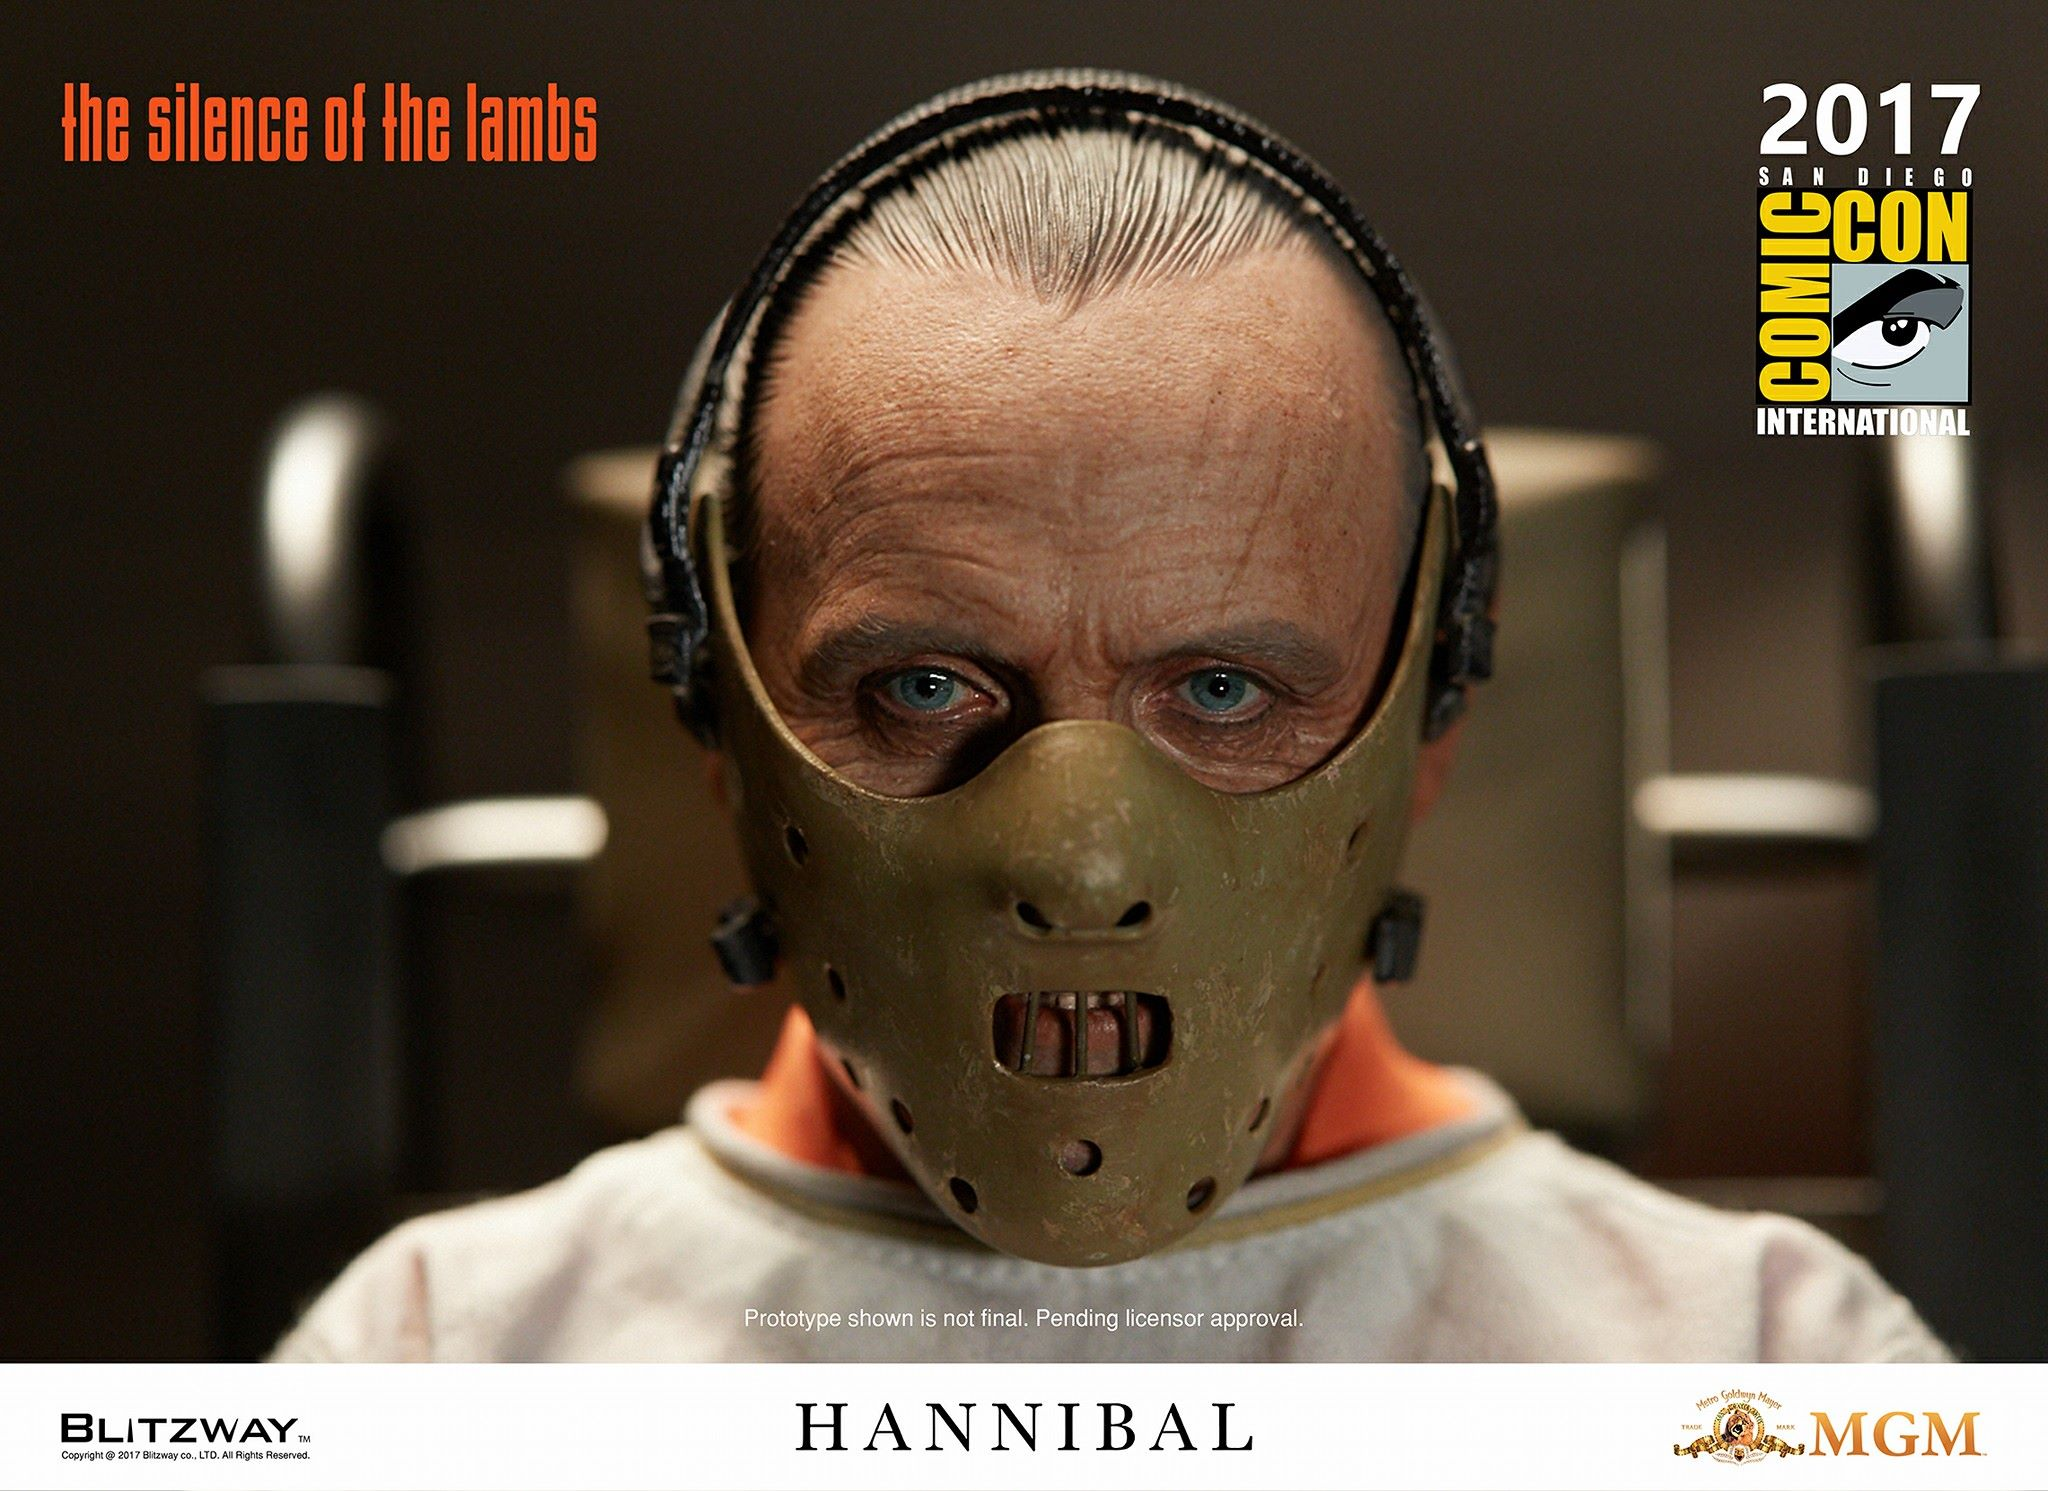 Silence of the Lambs - Dr. Hannibal Lecter Statues by